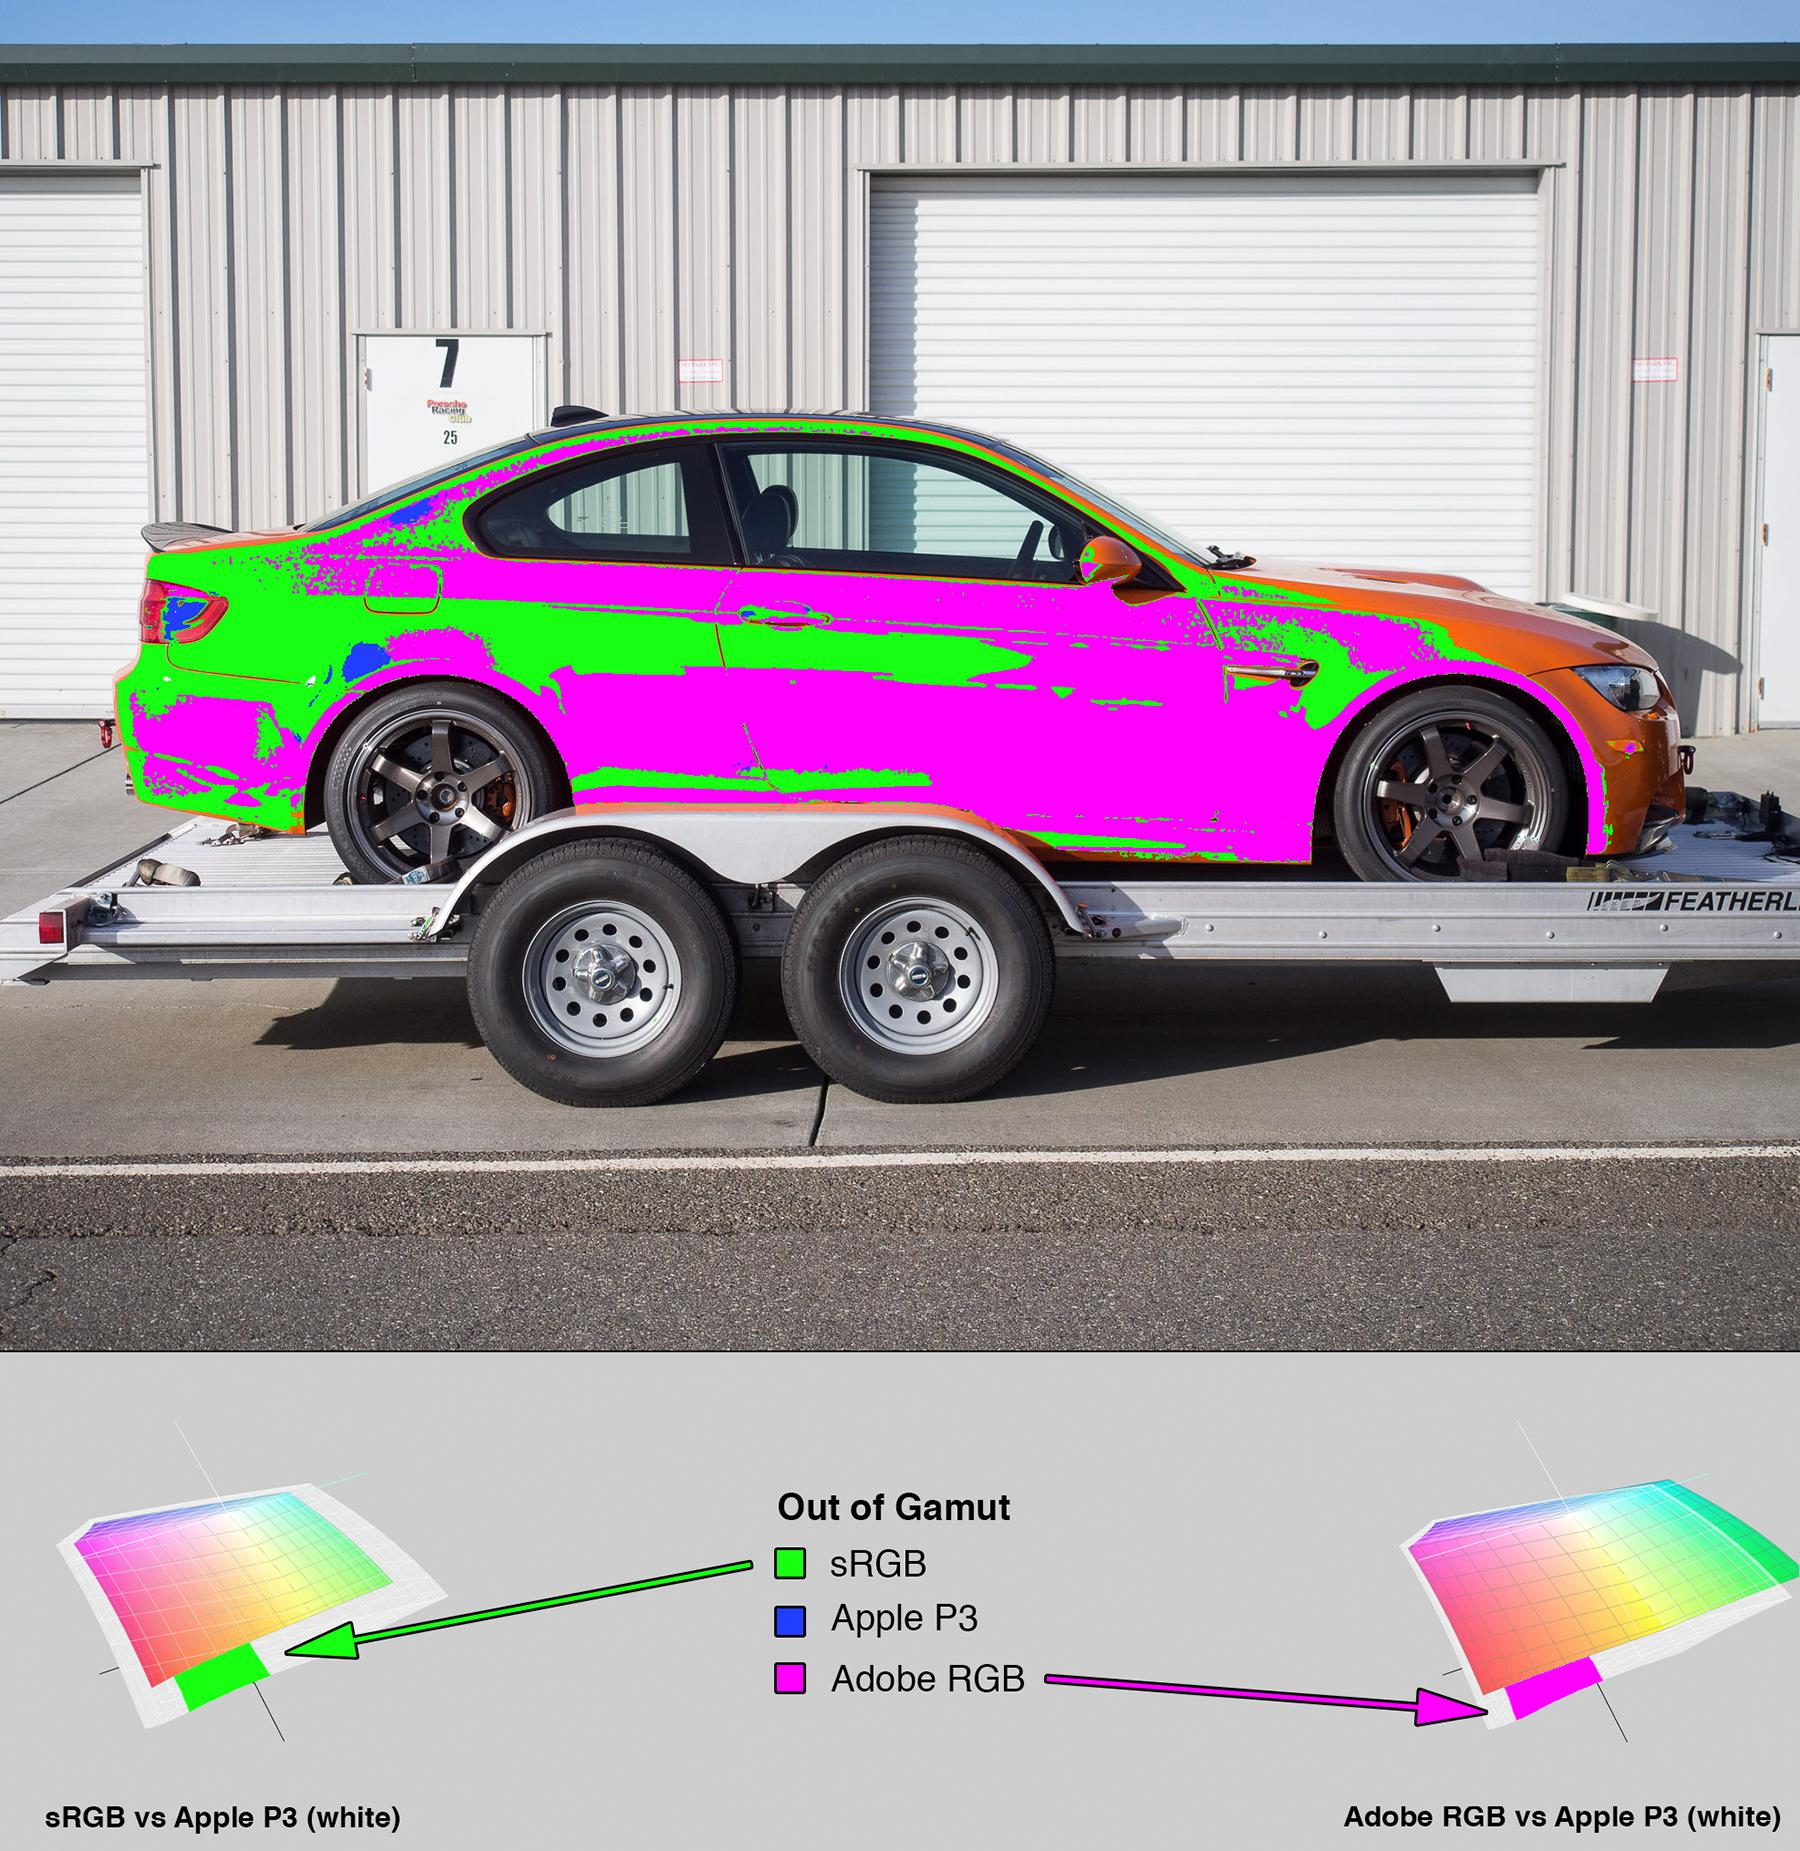 Car photo from Figure 5. Overlaid with a heat map indicating which ares of the image are out of gamut. At the bottom of the image is a section with 3D LAB plots showing how the colorspaces differ.